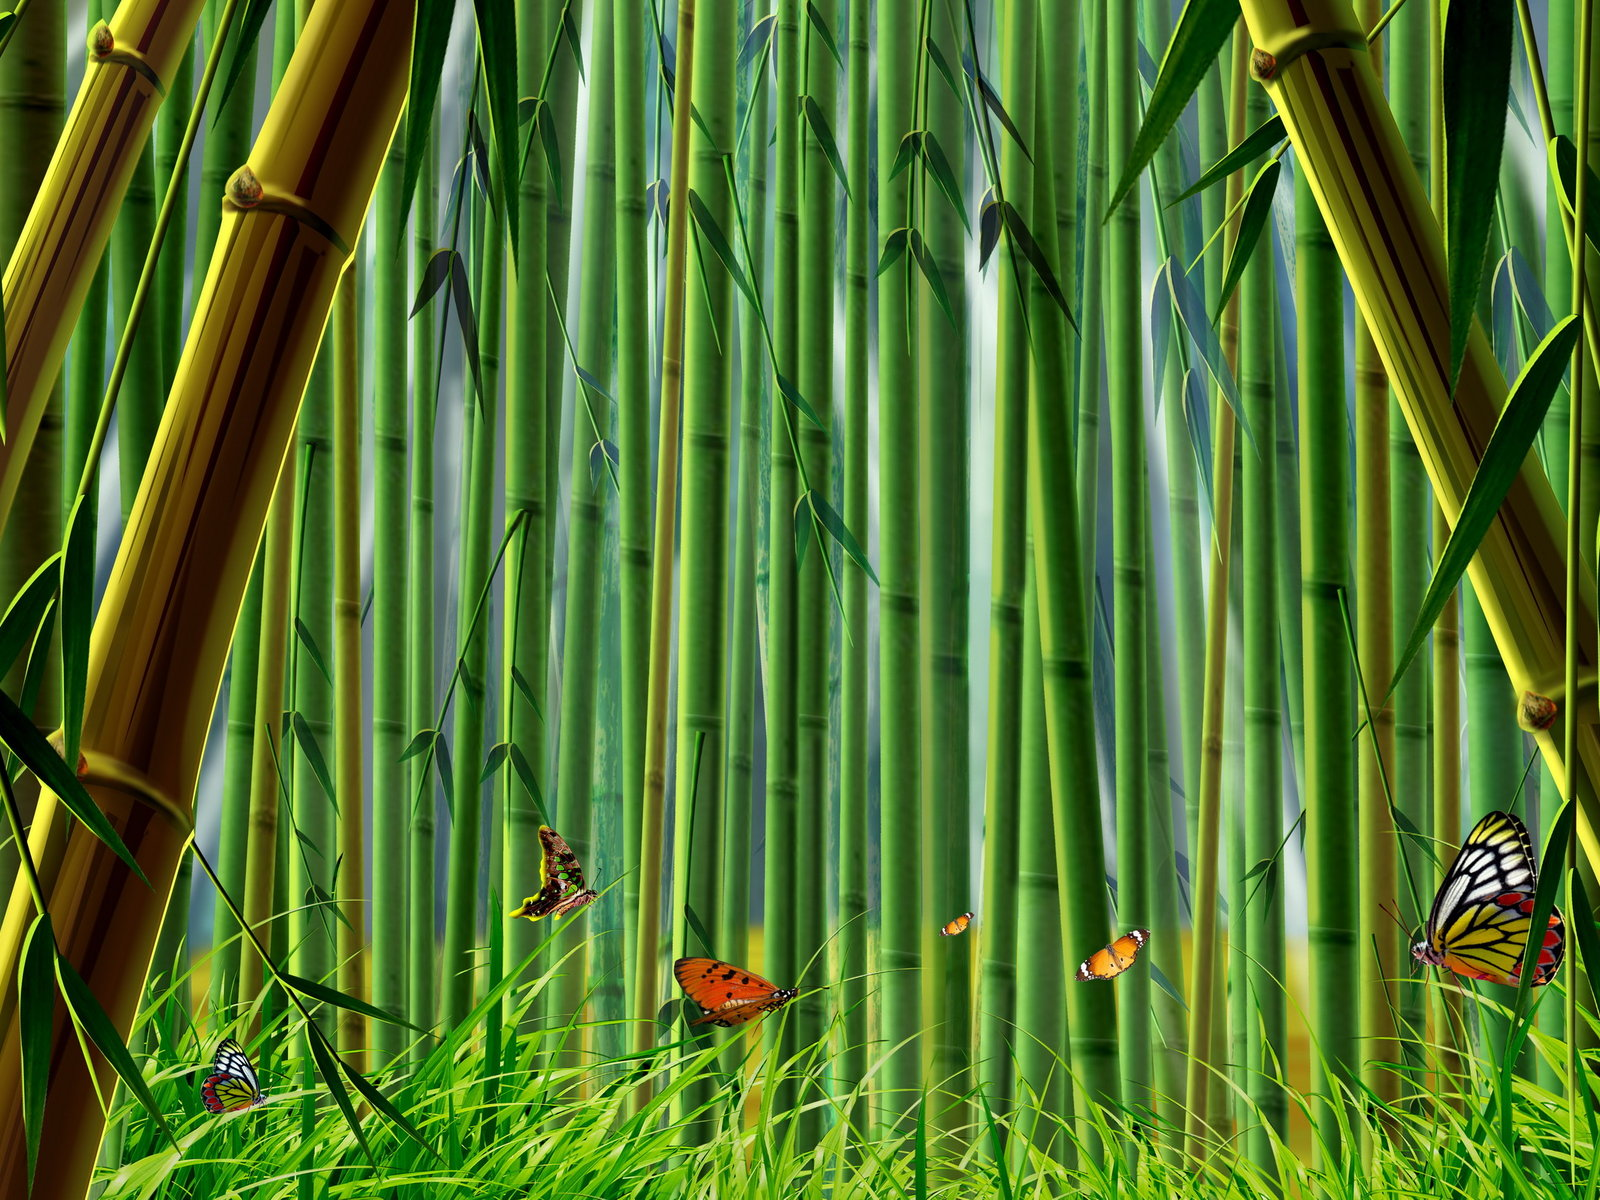 Bamboo Wallpaper: Bamboo Wallpapers Collection 20-30